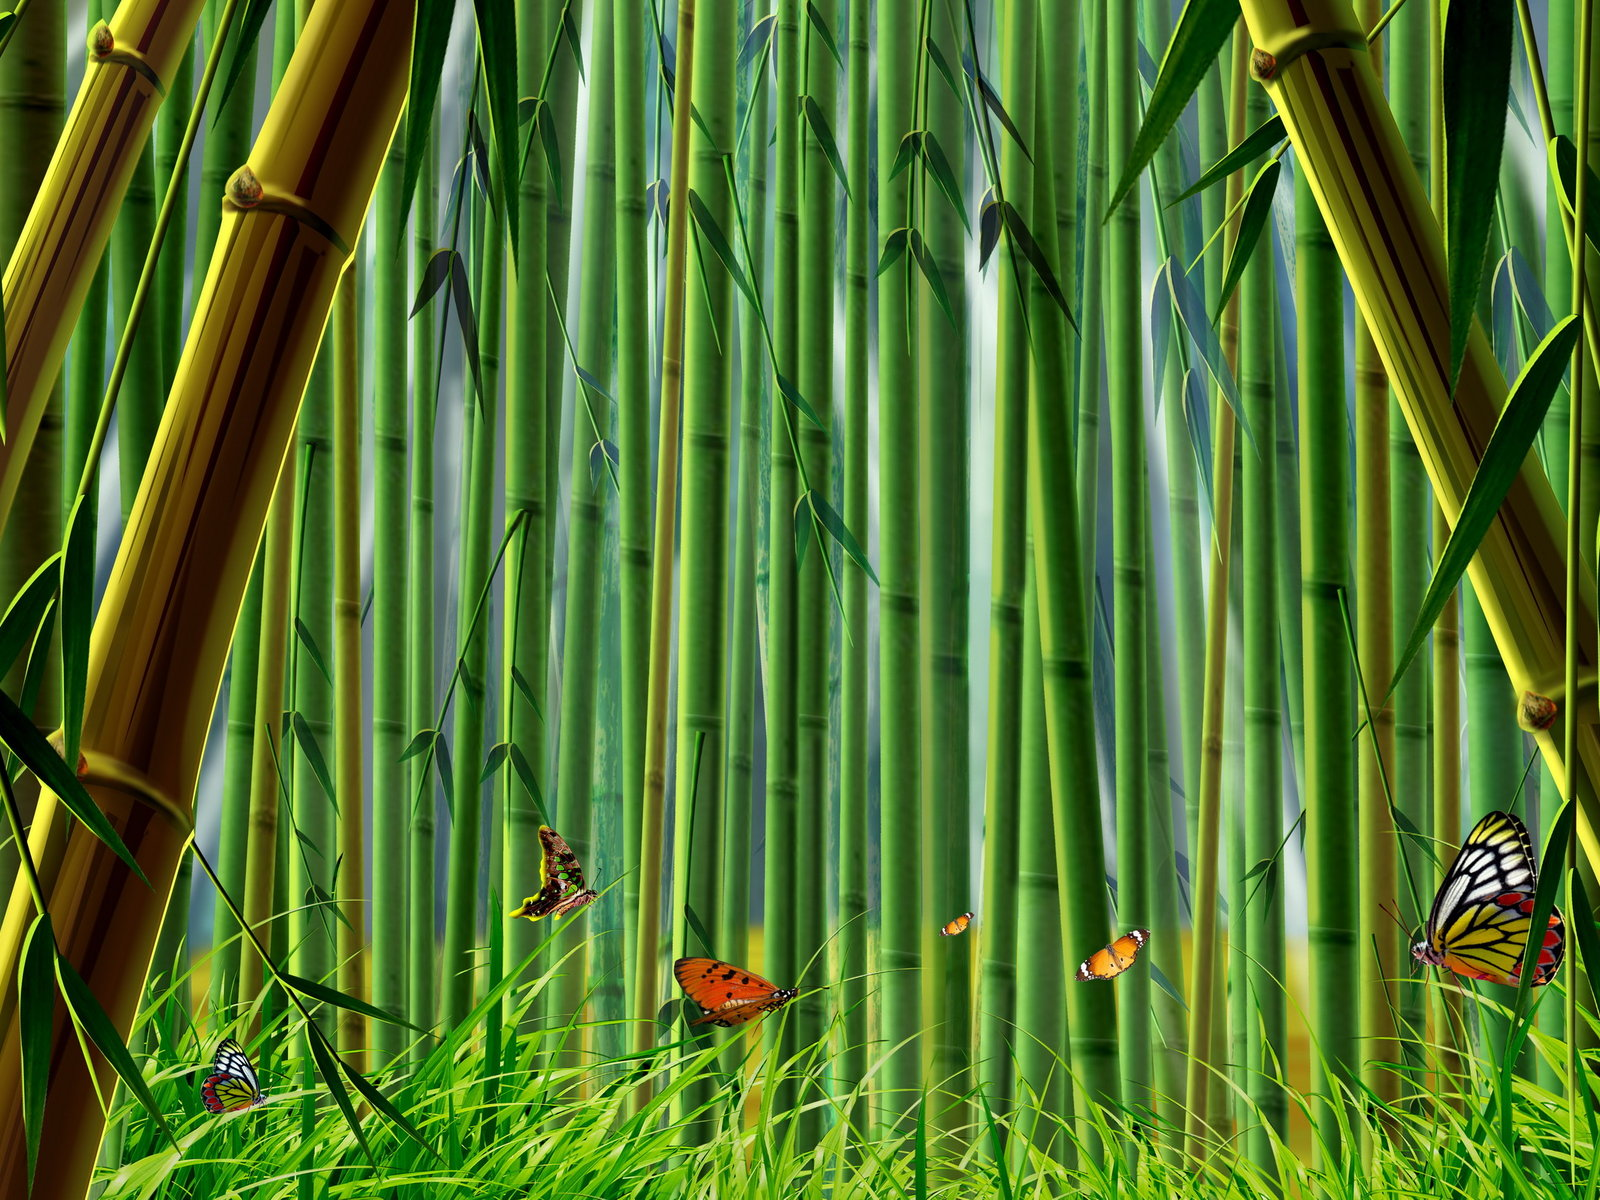 Bamboo Wallpaper: Bamboo Wallpapers Collection 20-30